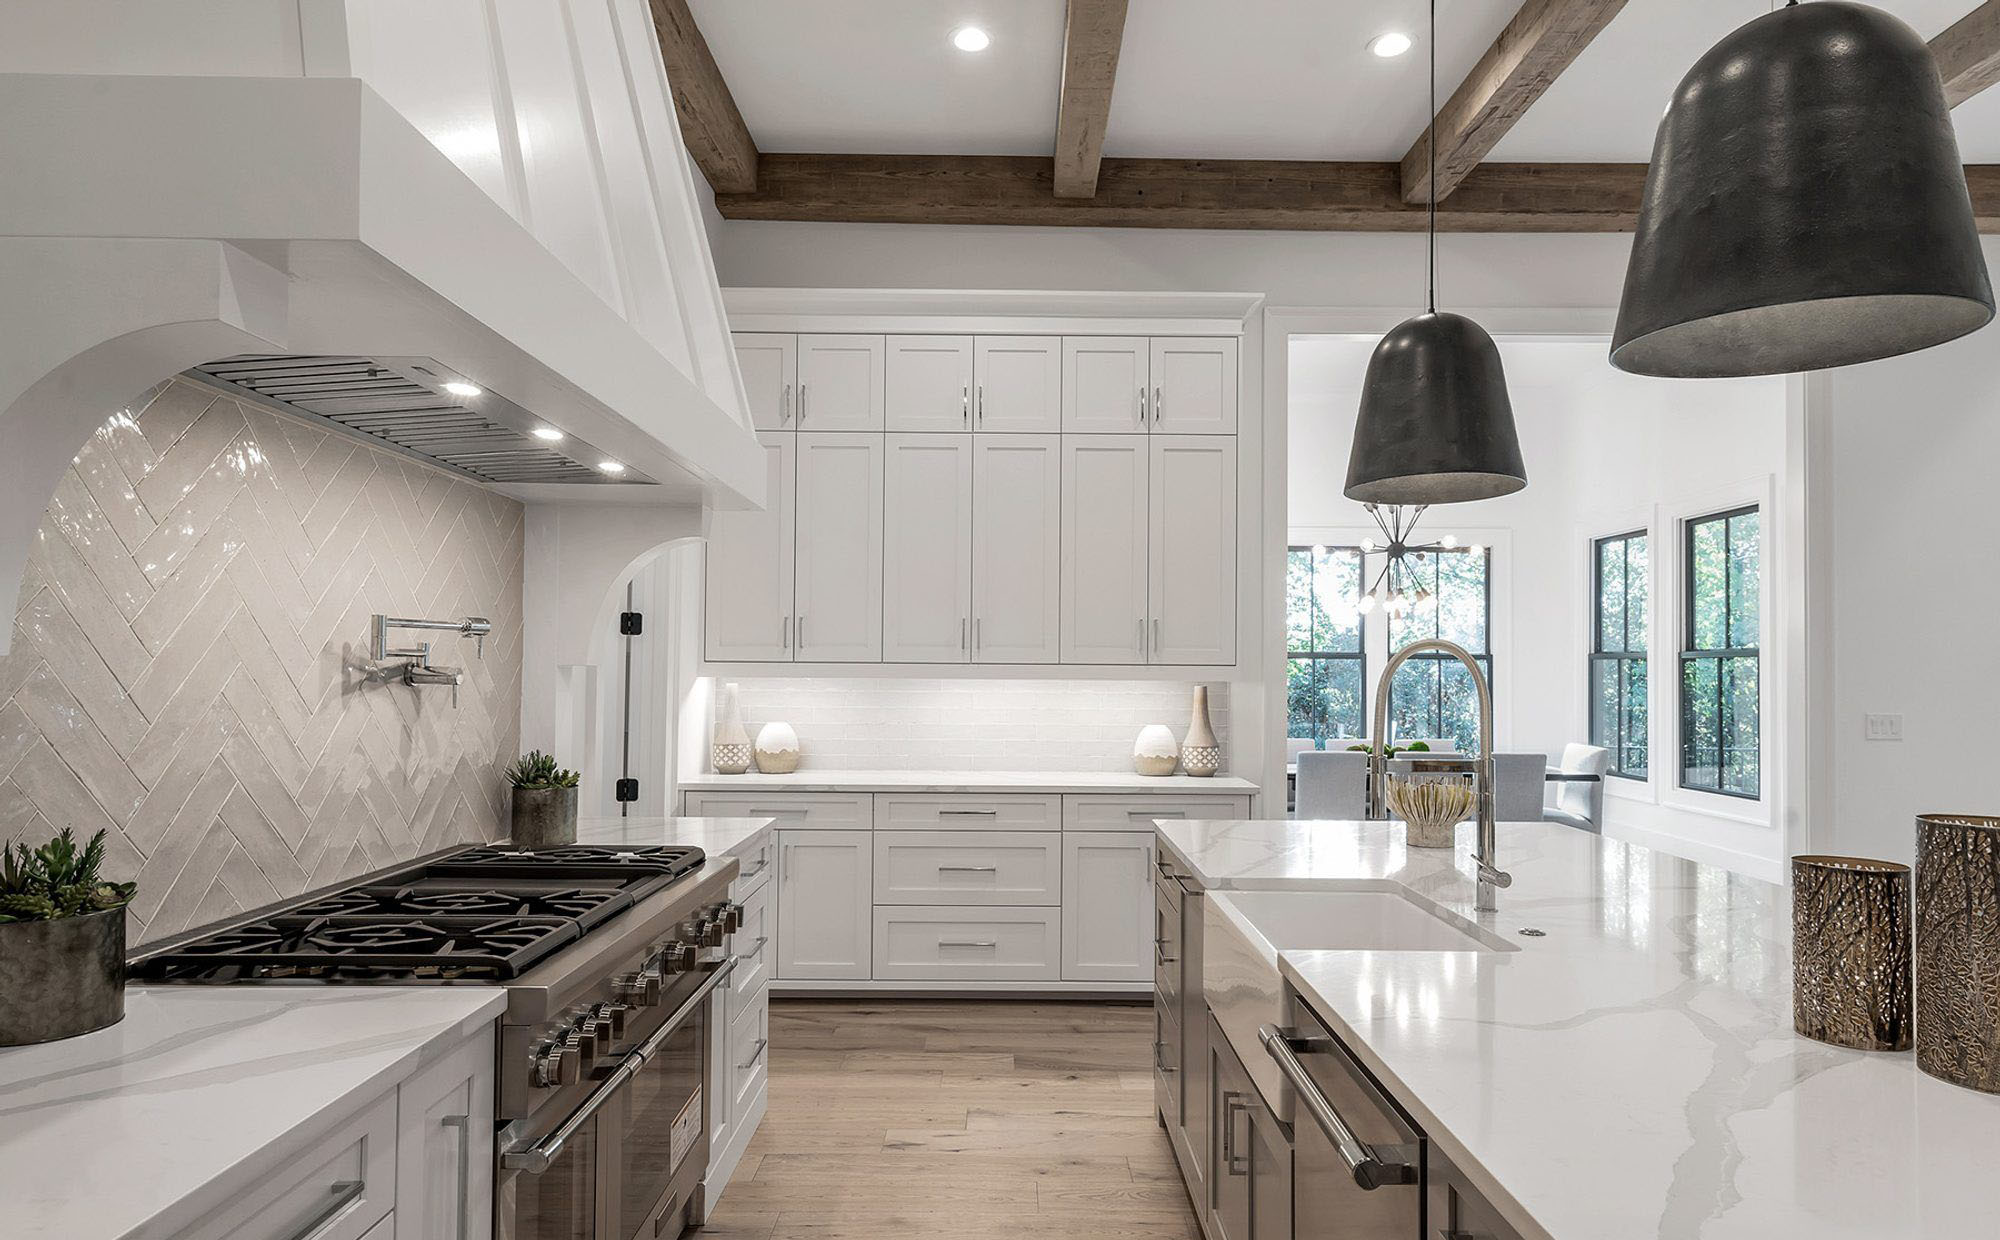 Modern kitchen with shaker style white cabinetry, gray center island, quartz and muted hardwood flooring.